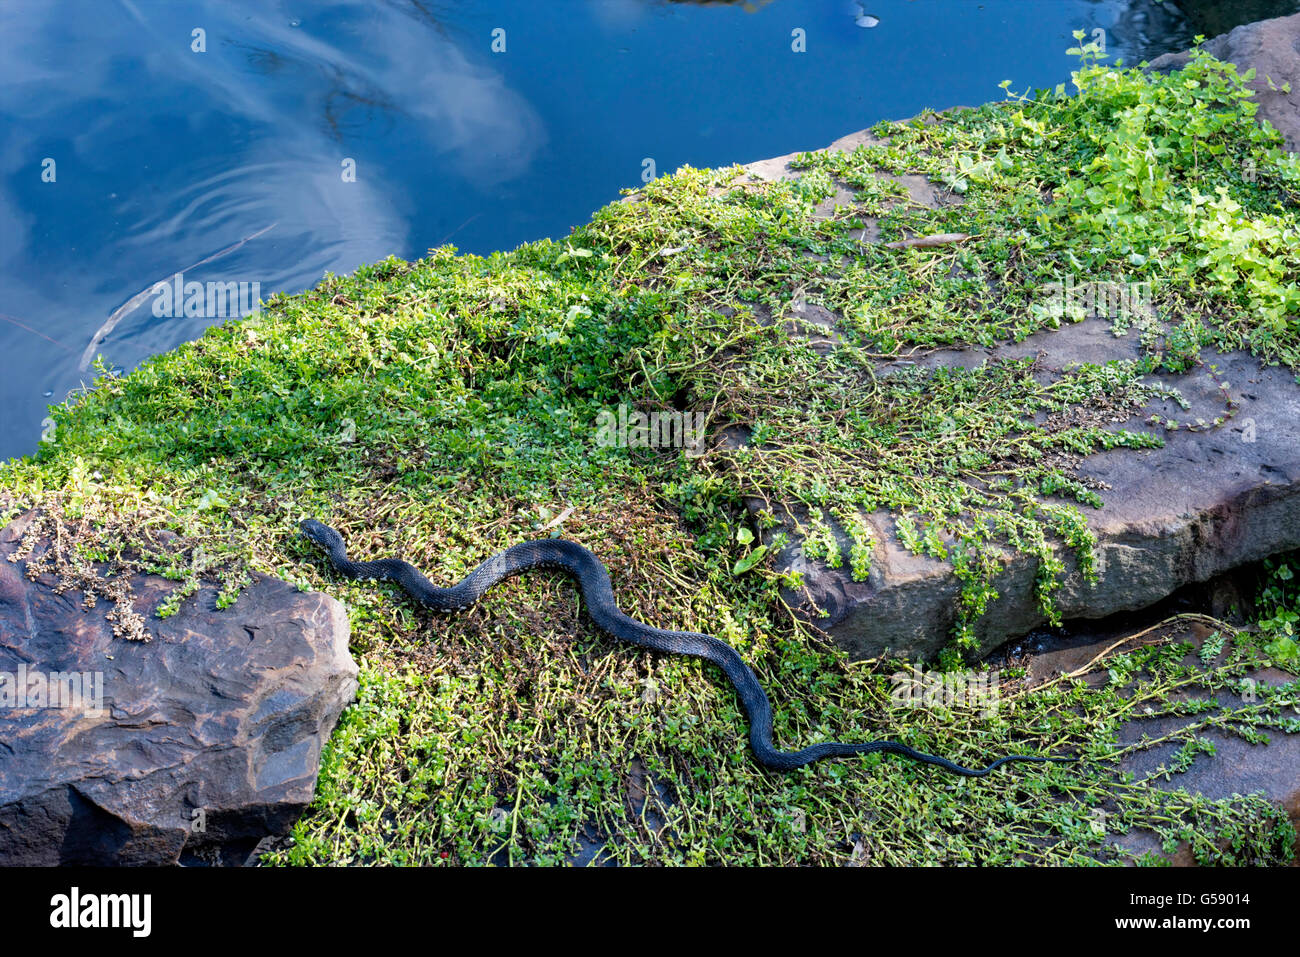 Large black snake slithering towards water. Boulder and grass foreground - Stock Image